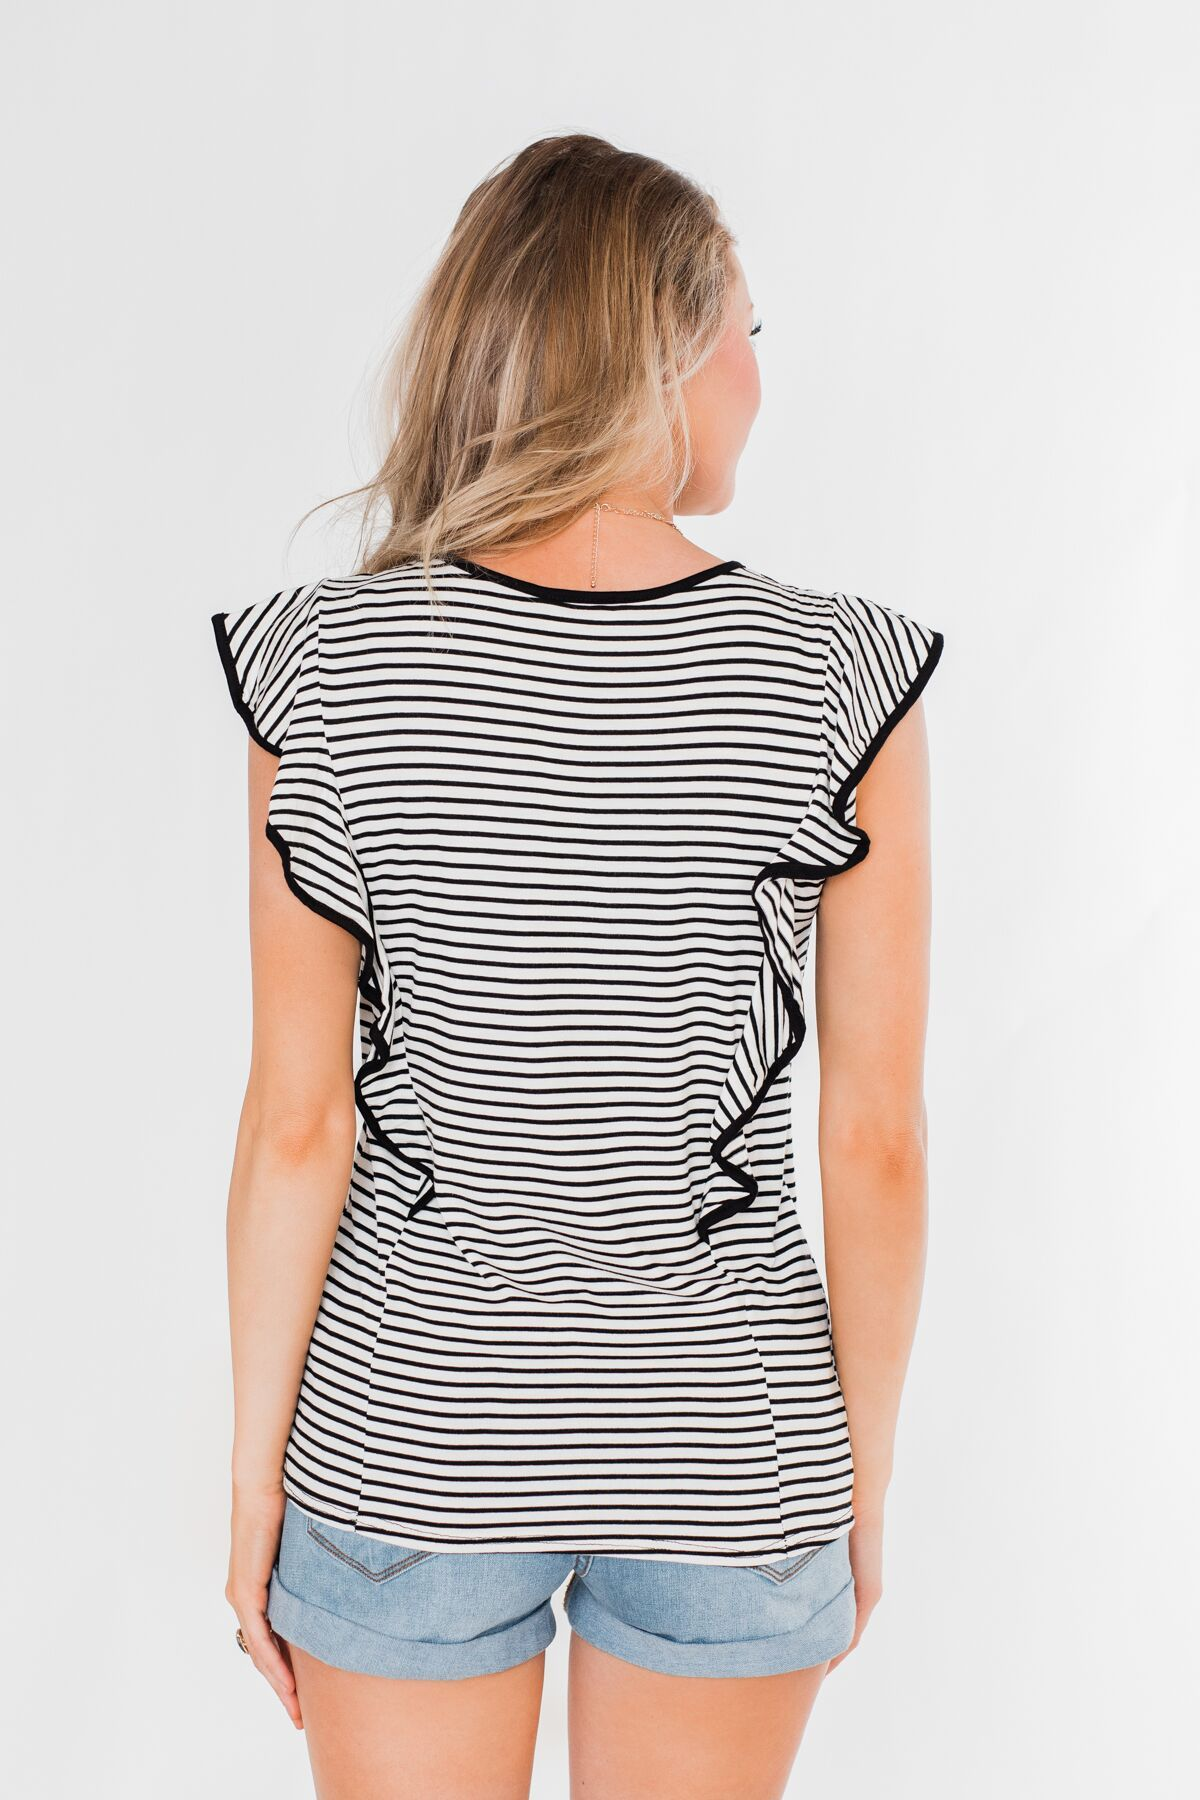 All The Good Things Striped Ruffle Top- Black & Ivory